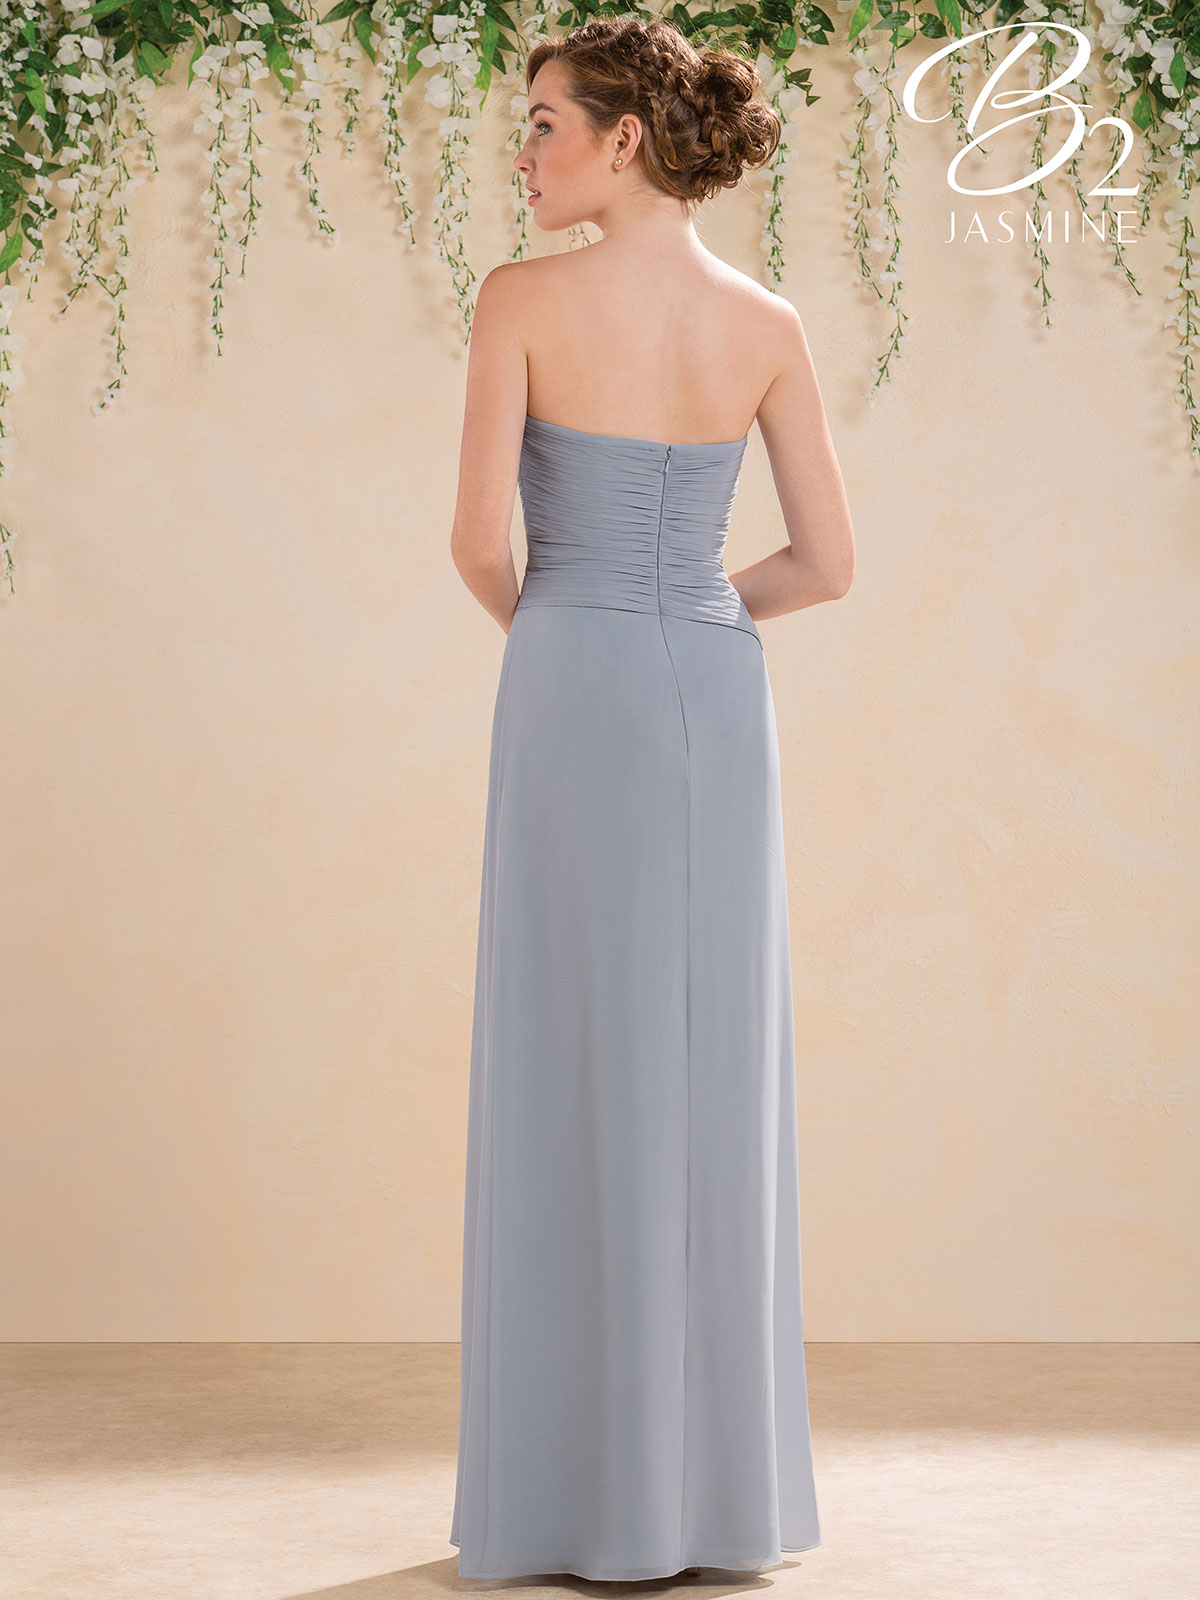 Jasmine b183006 sweetheart chiffon a line bridesmaid dress chiffon a line jasmine bridesmaid dress b183006 ombrellifo Images